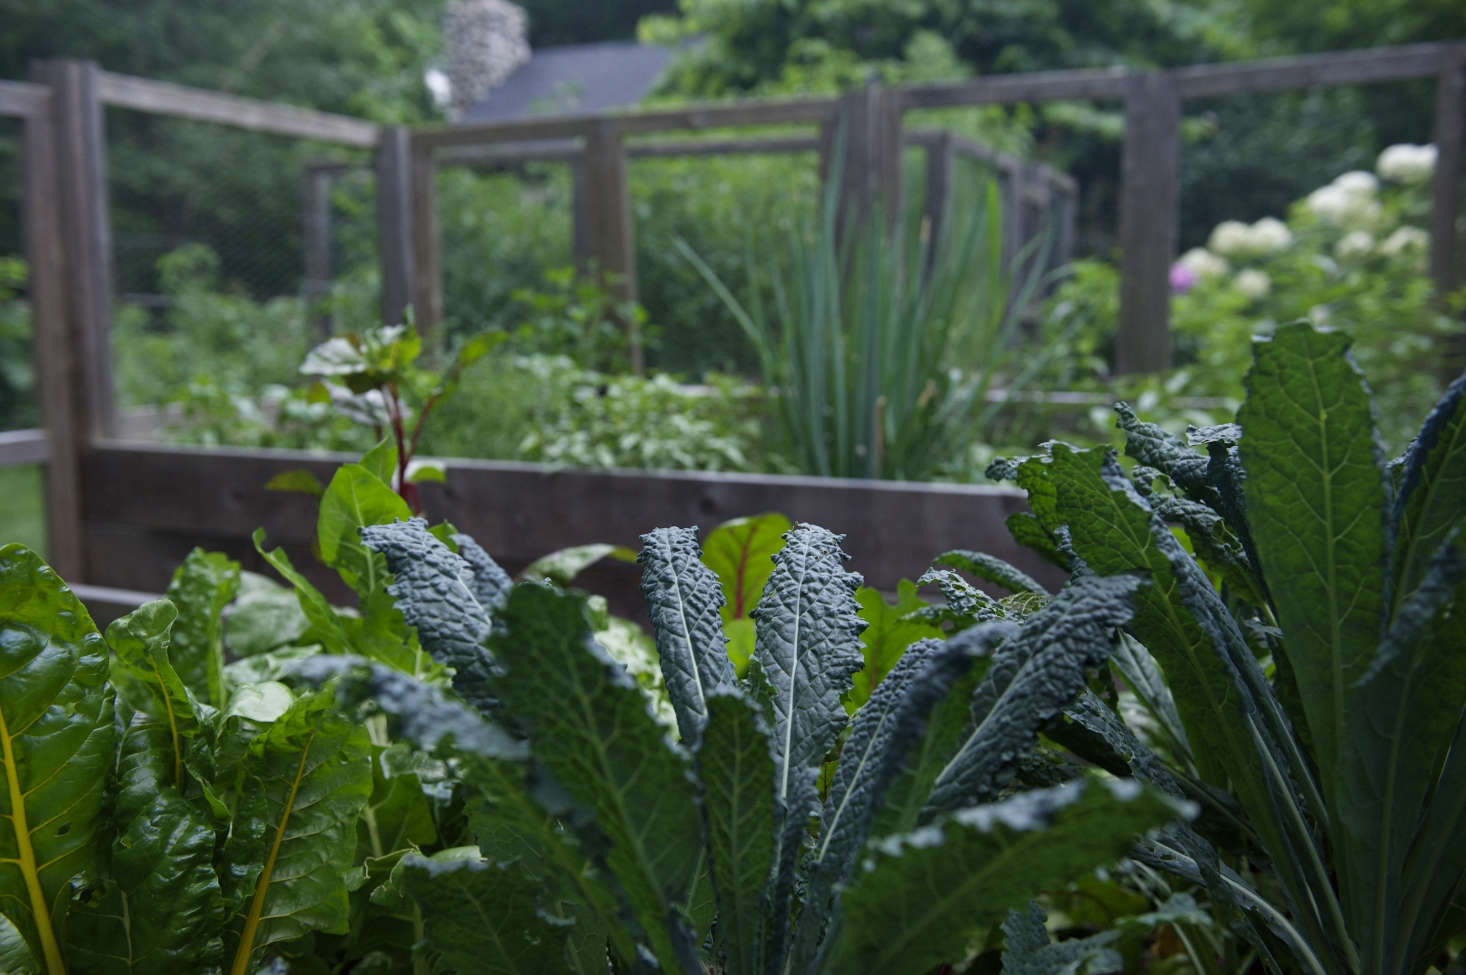 Deep green and textured, kale adds visual interest to Laura Silverman&#8